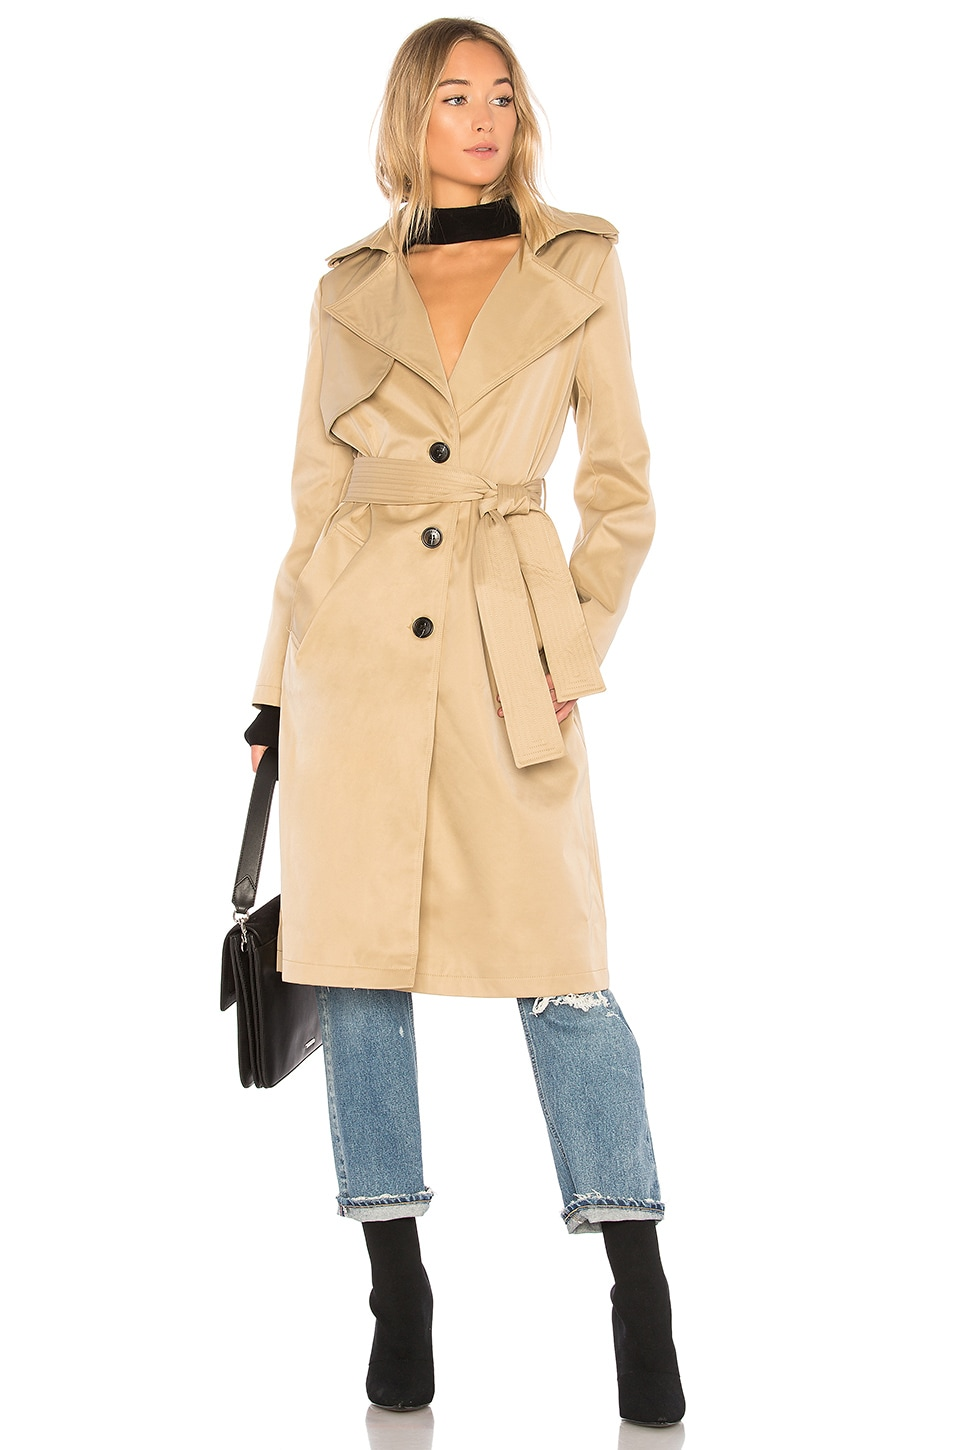 ON PARLE DE VOUS Femme Trench in Beige